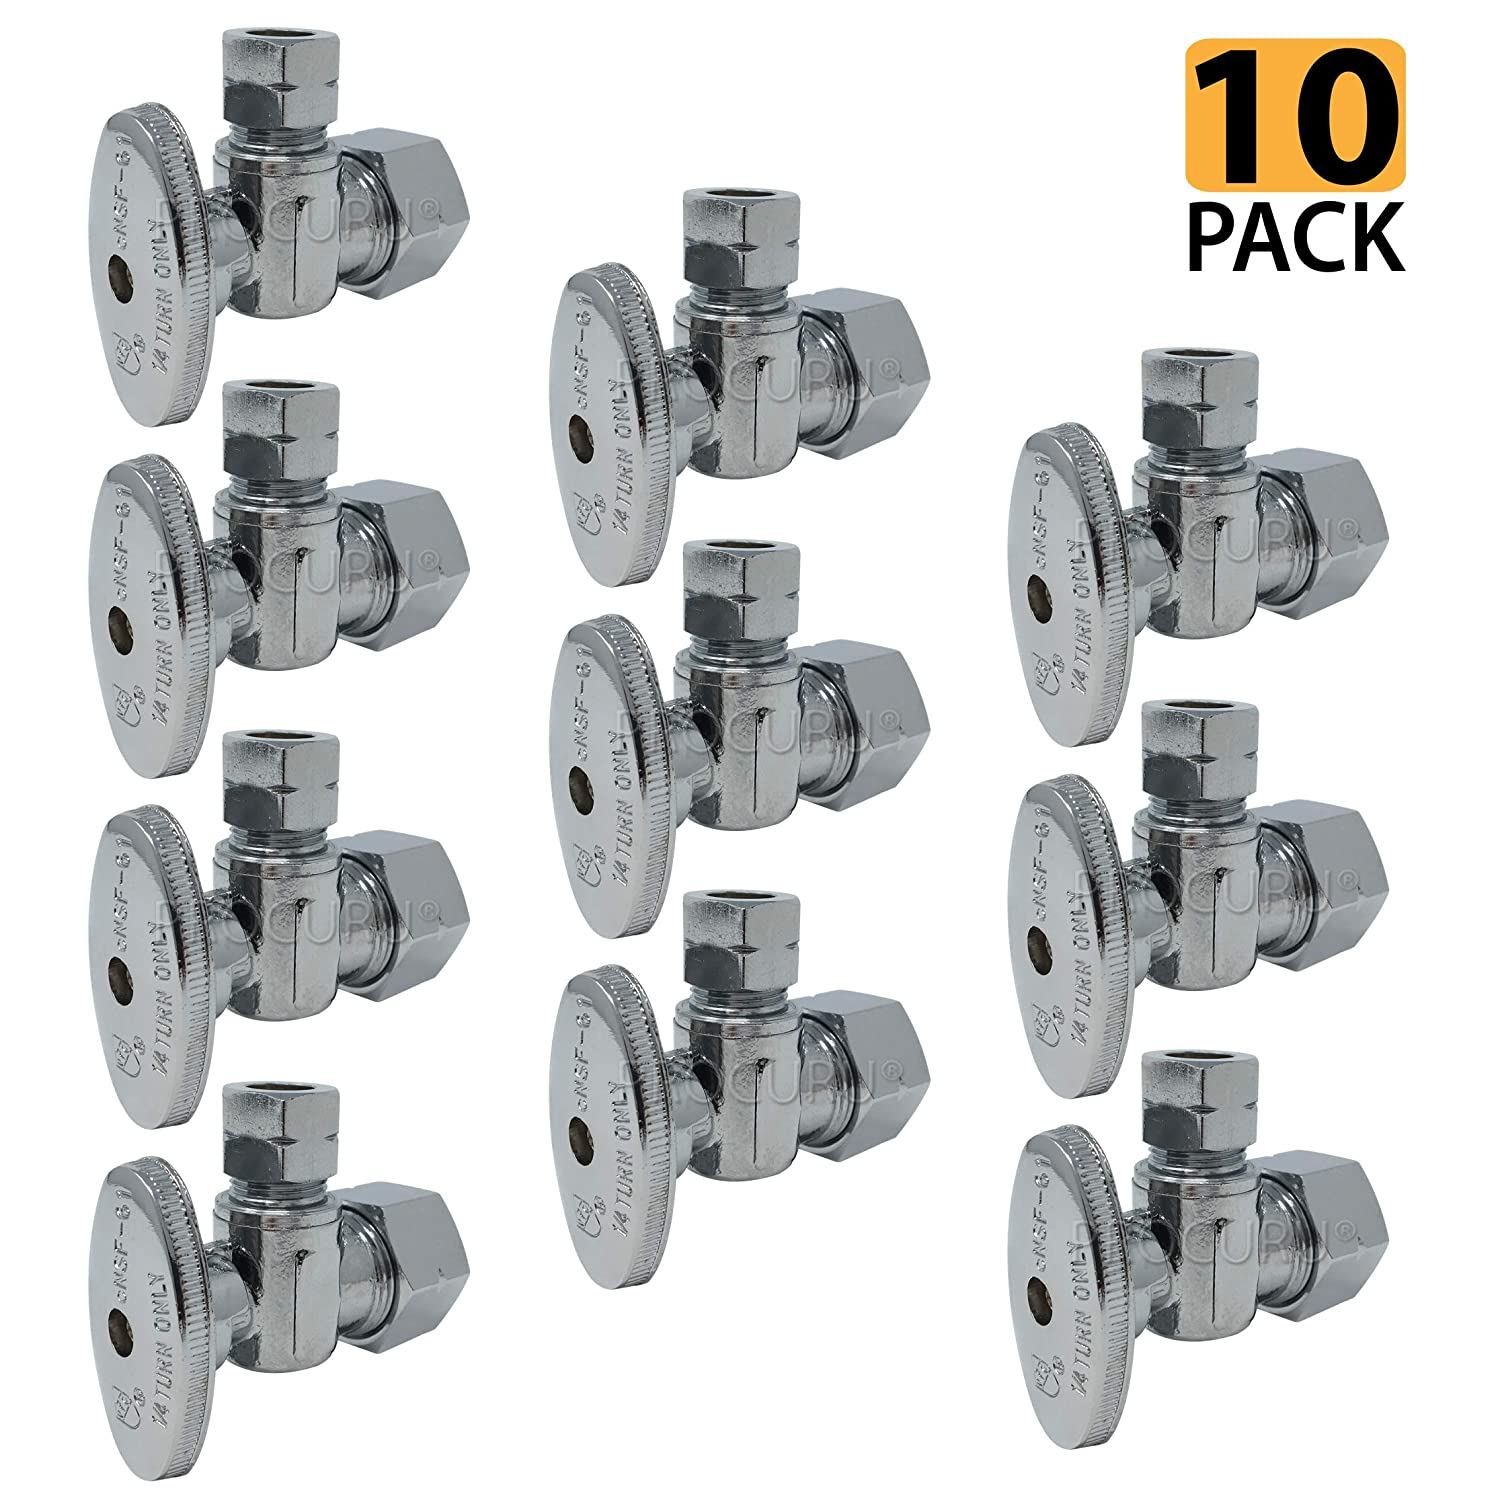 "[10-Pack] PROCURU Angle Stop Valve 1/2"" Nominal (5/8"" OD) Inlet x 3/8"" OD Comp Outlet, 1/4-Turn Lead Free (10-Pack)"